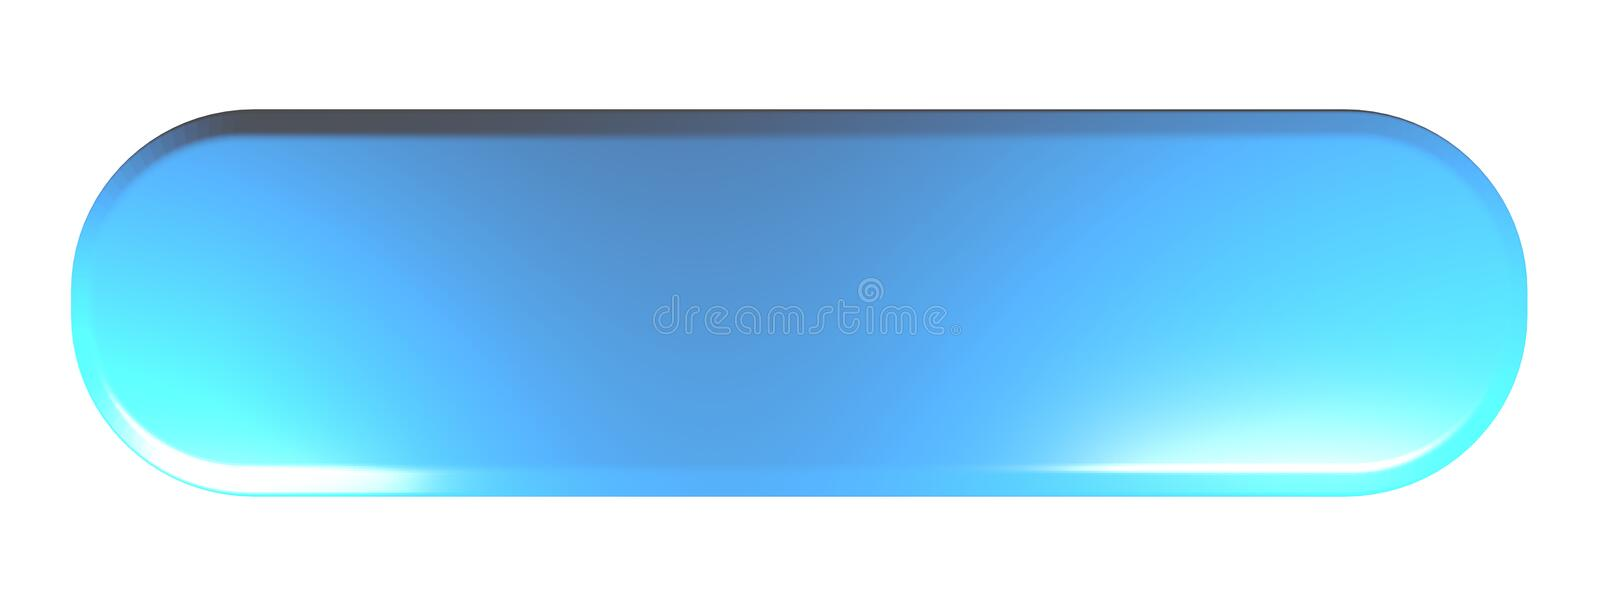 Blue rounded rectangle push button Empty - 3D rendering illustration royalty free illustration